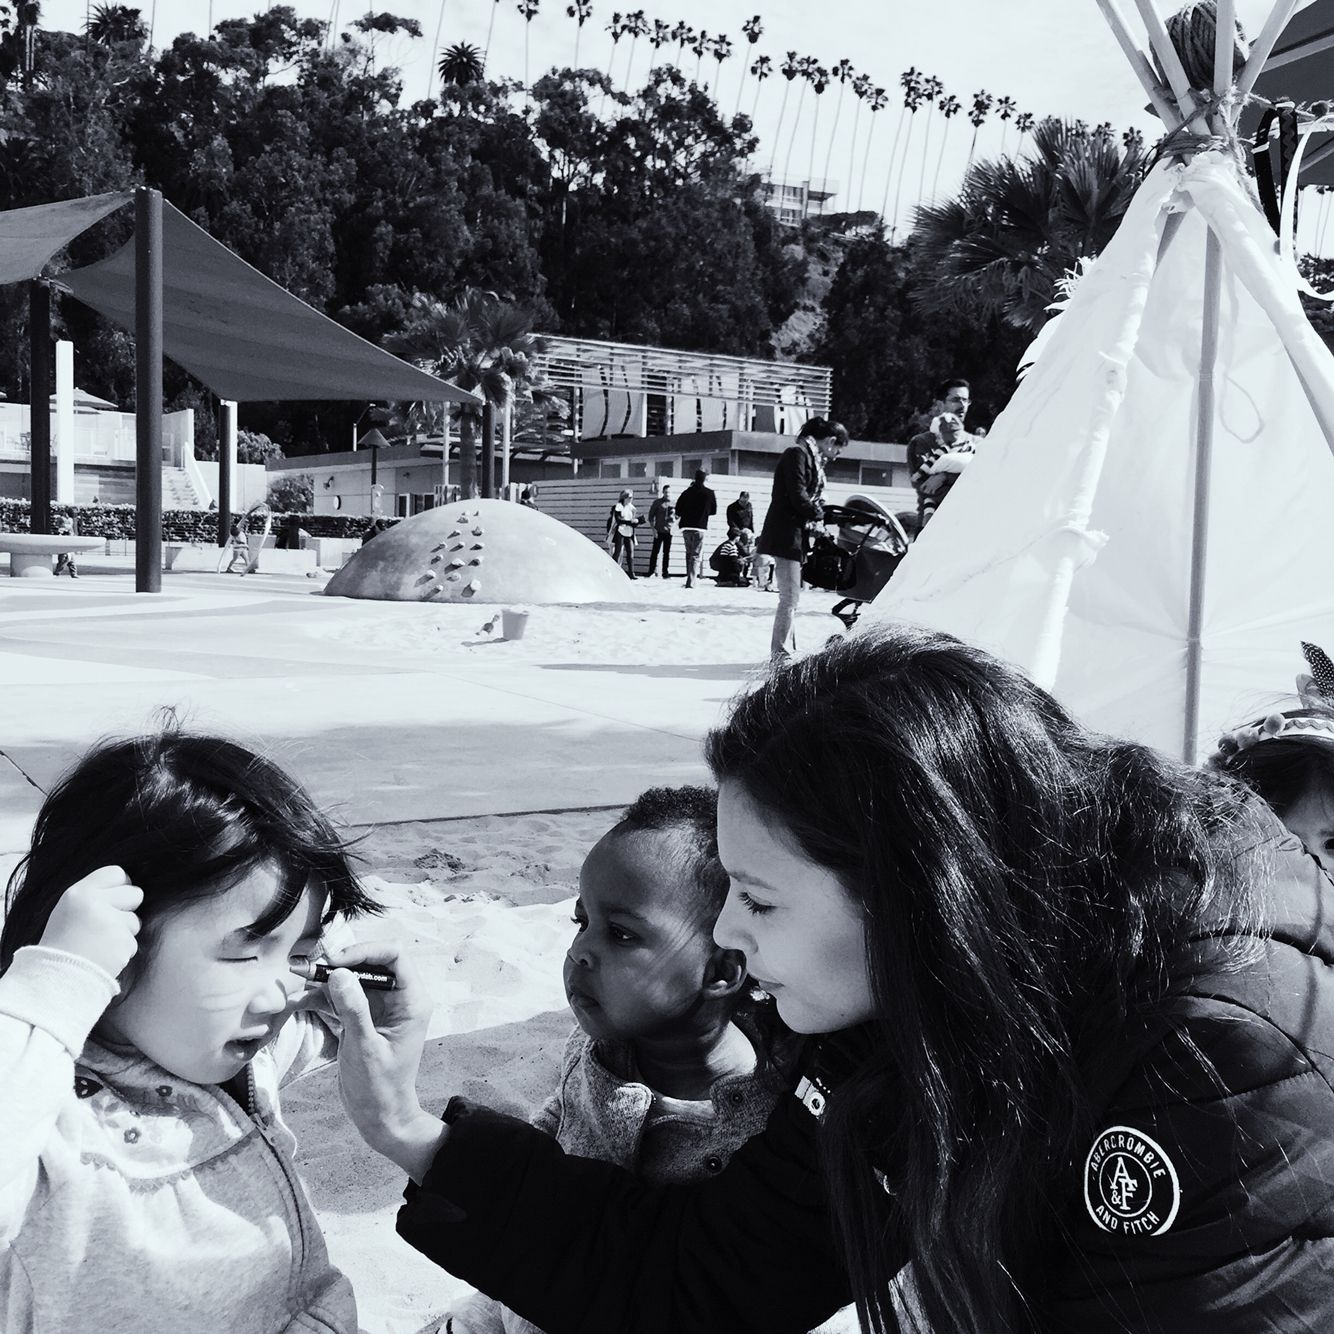 My cousin Camila painting kids faces with native american